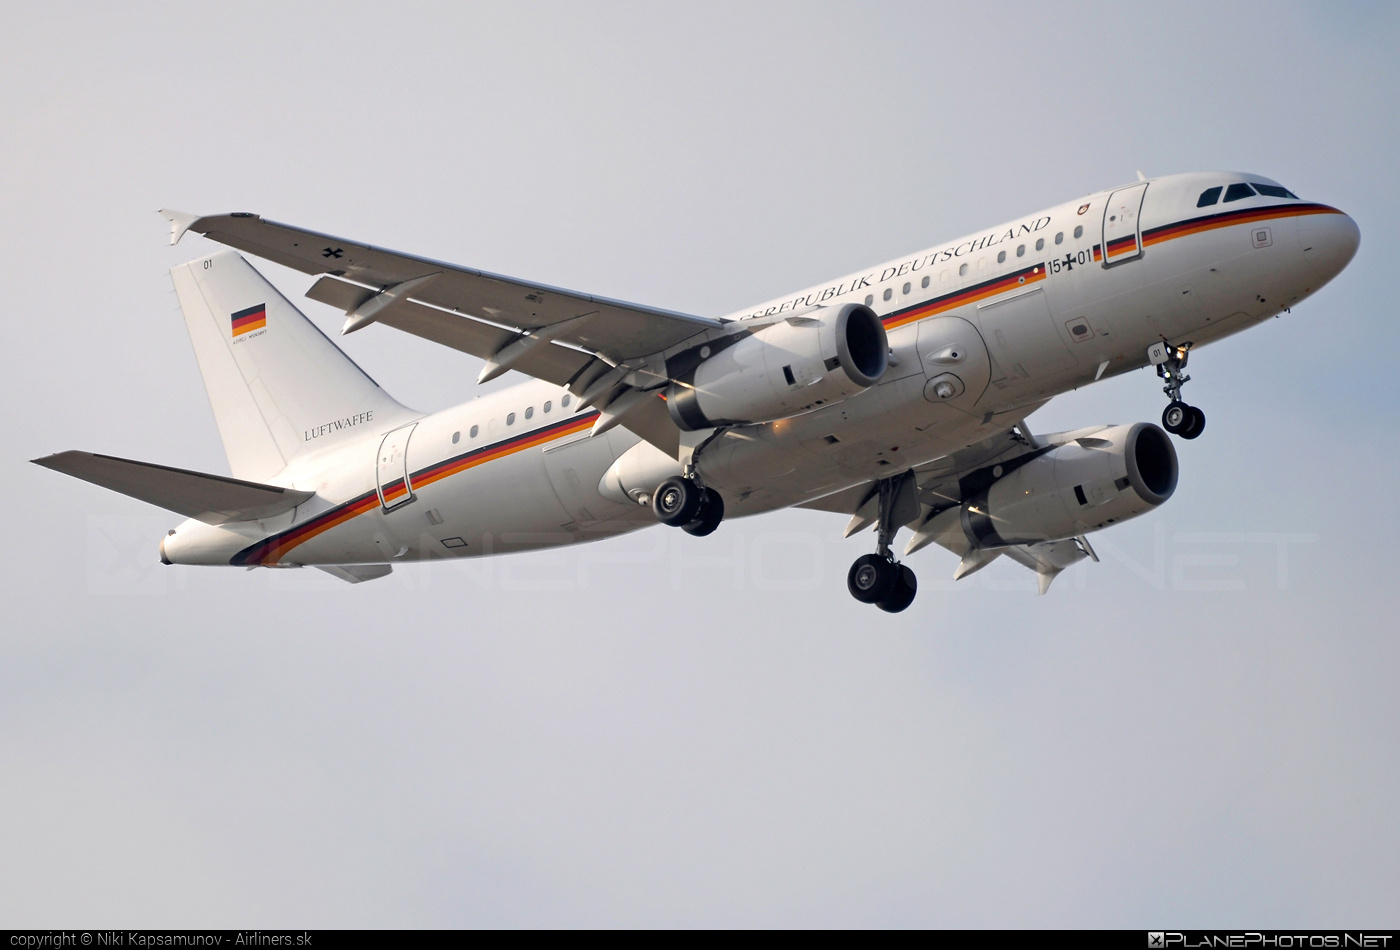 Airbus ACJ319-133X - 15+01 operated by Luftwaffe (German Air Force) #acj319 #acj319133x #airbus #airbuscorporatejet